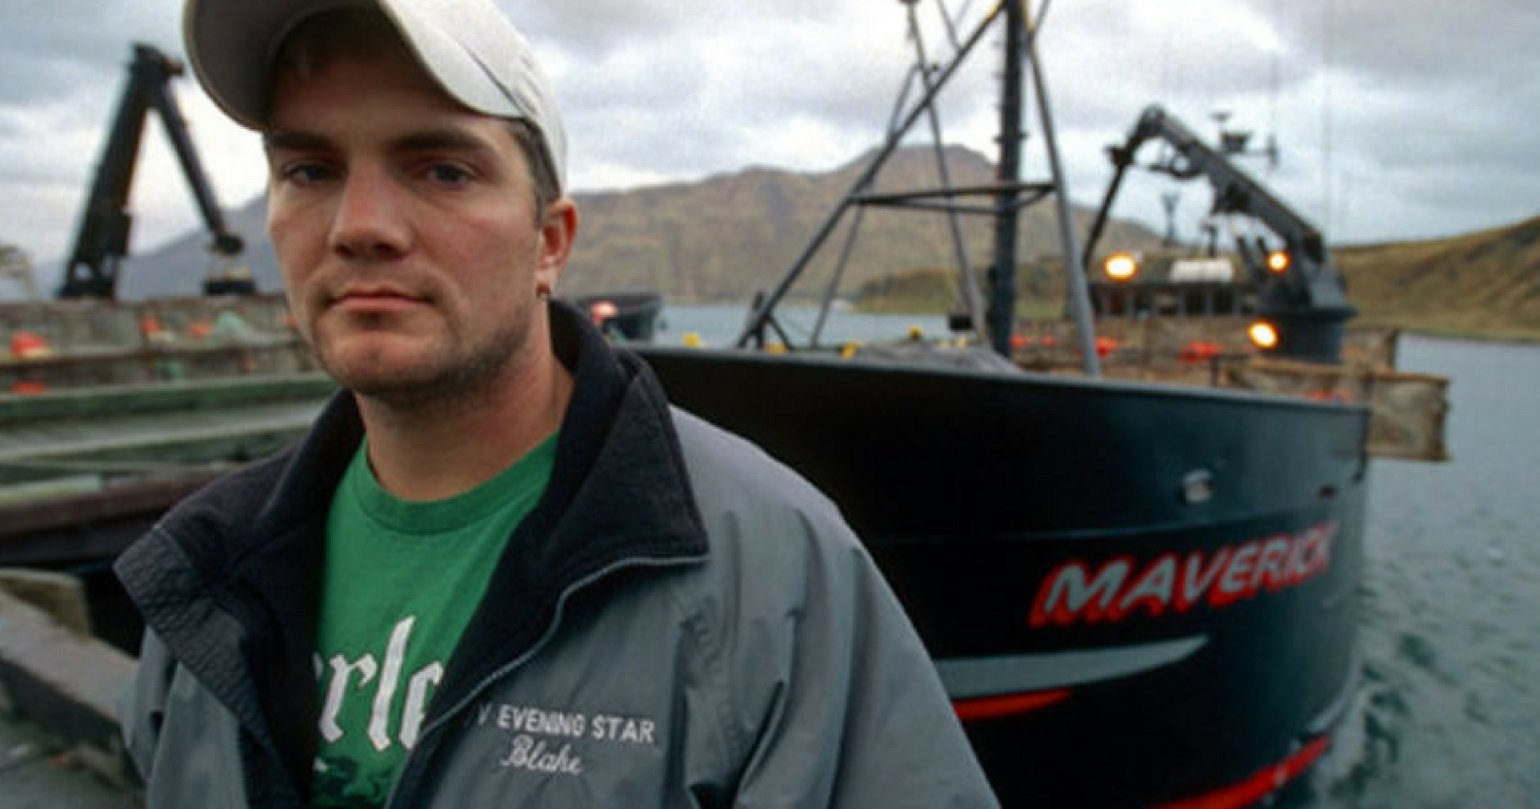 Did 'Deadliest Catch' star Blake Painter die of drug overdose?